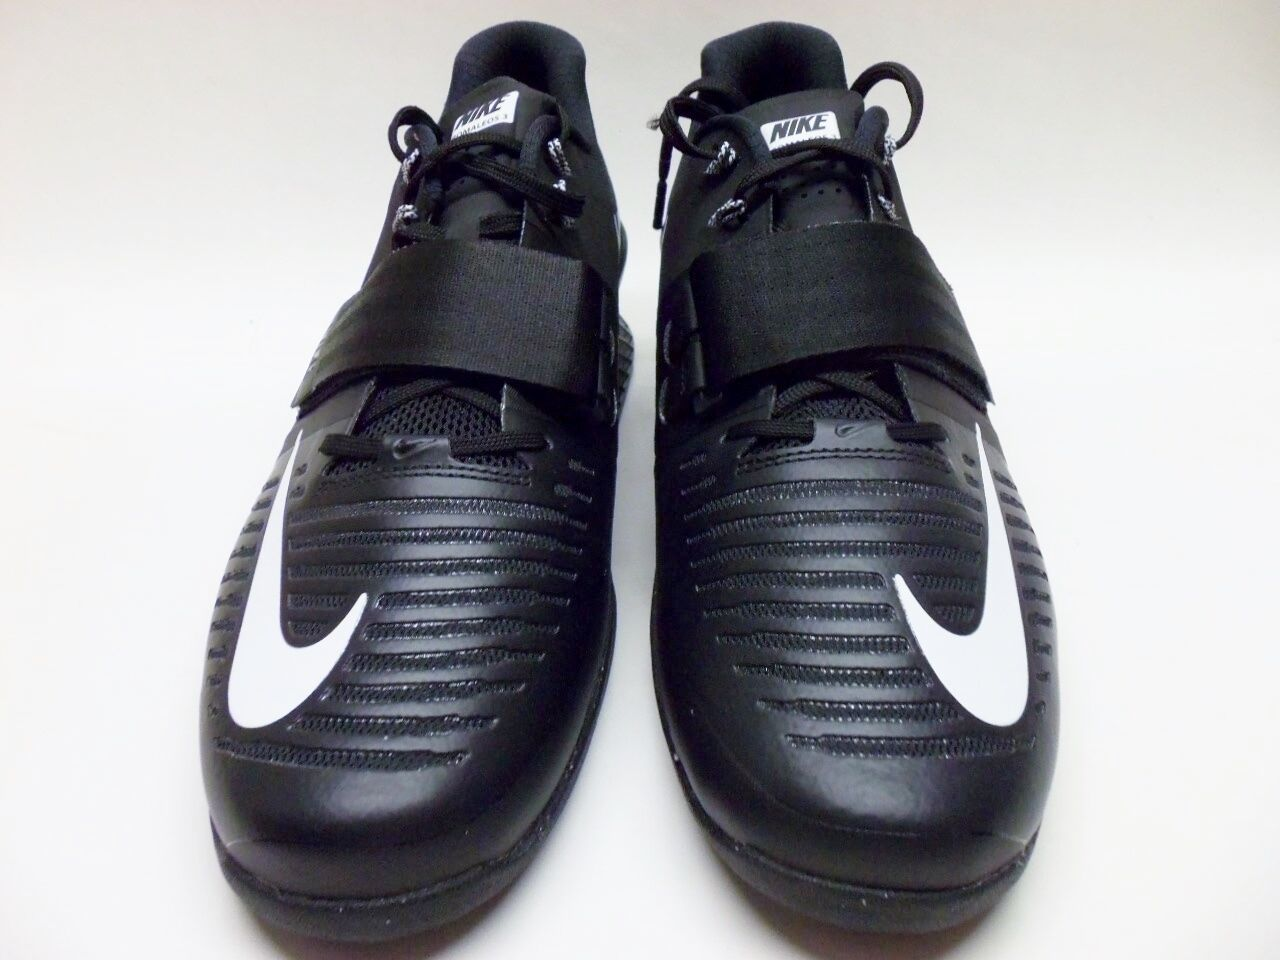 NIKE ROMALEOS 3 WEIGHTLIFTING BLACK WHITE SIZE MEN'S MEN'S MEN'S 12 [852933-002] 6fd861